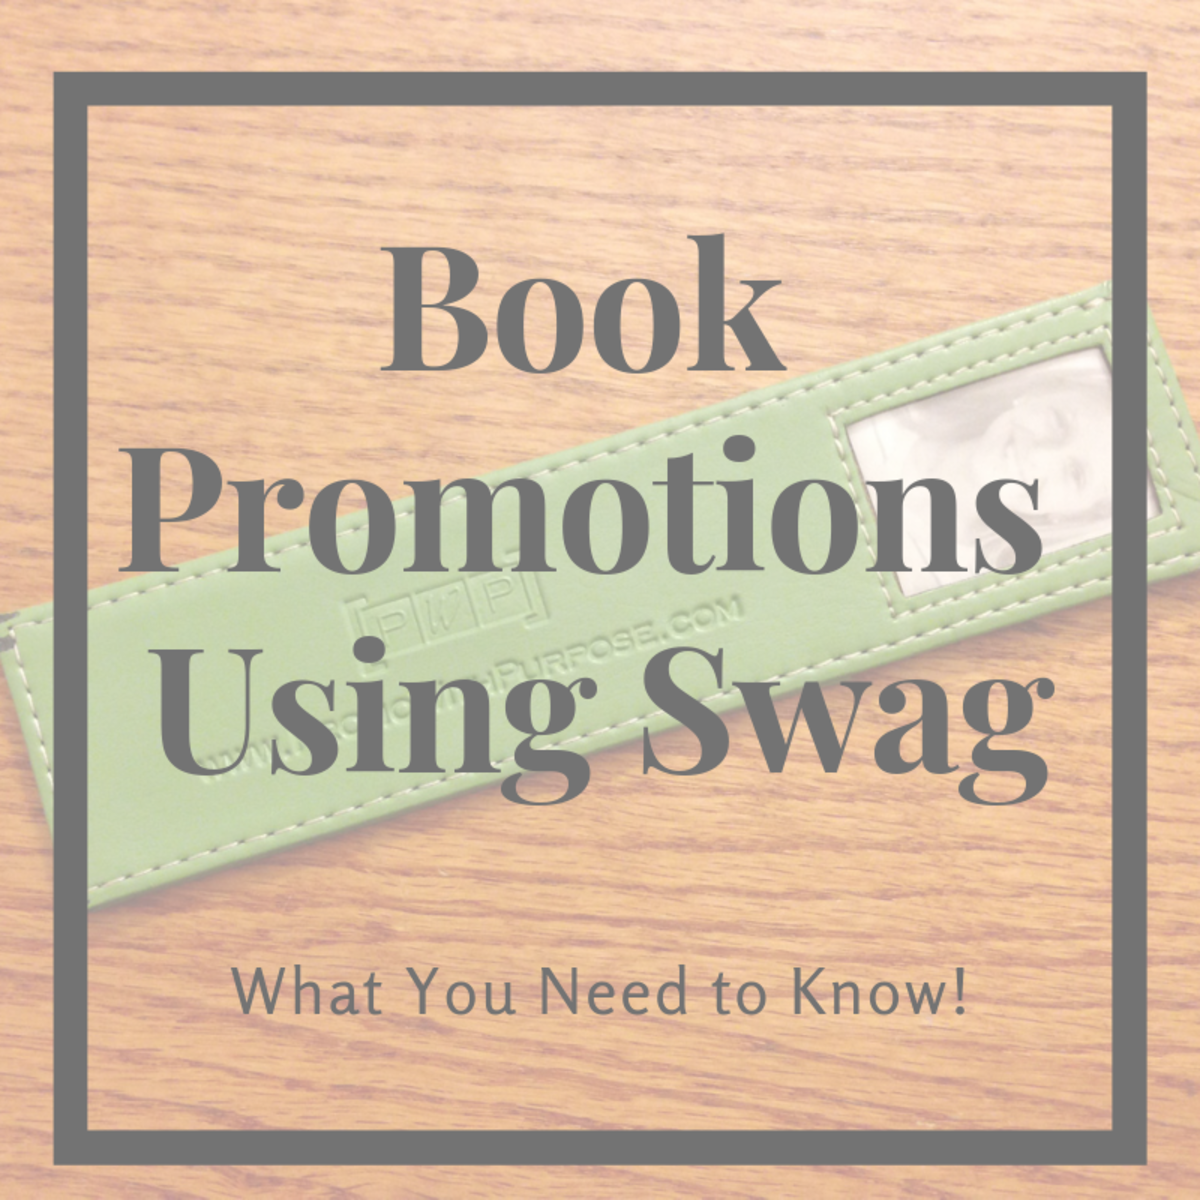 Book Promotions Using Swag: What You Need to Know